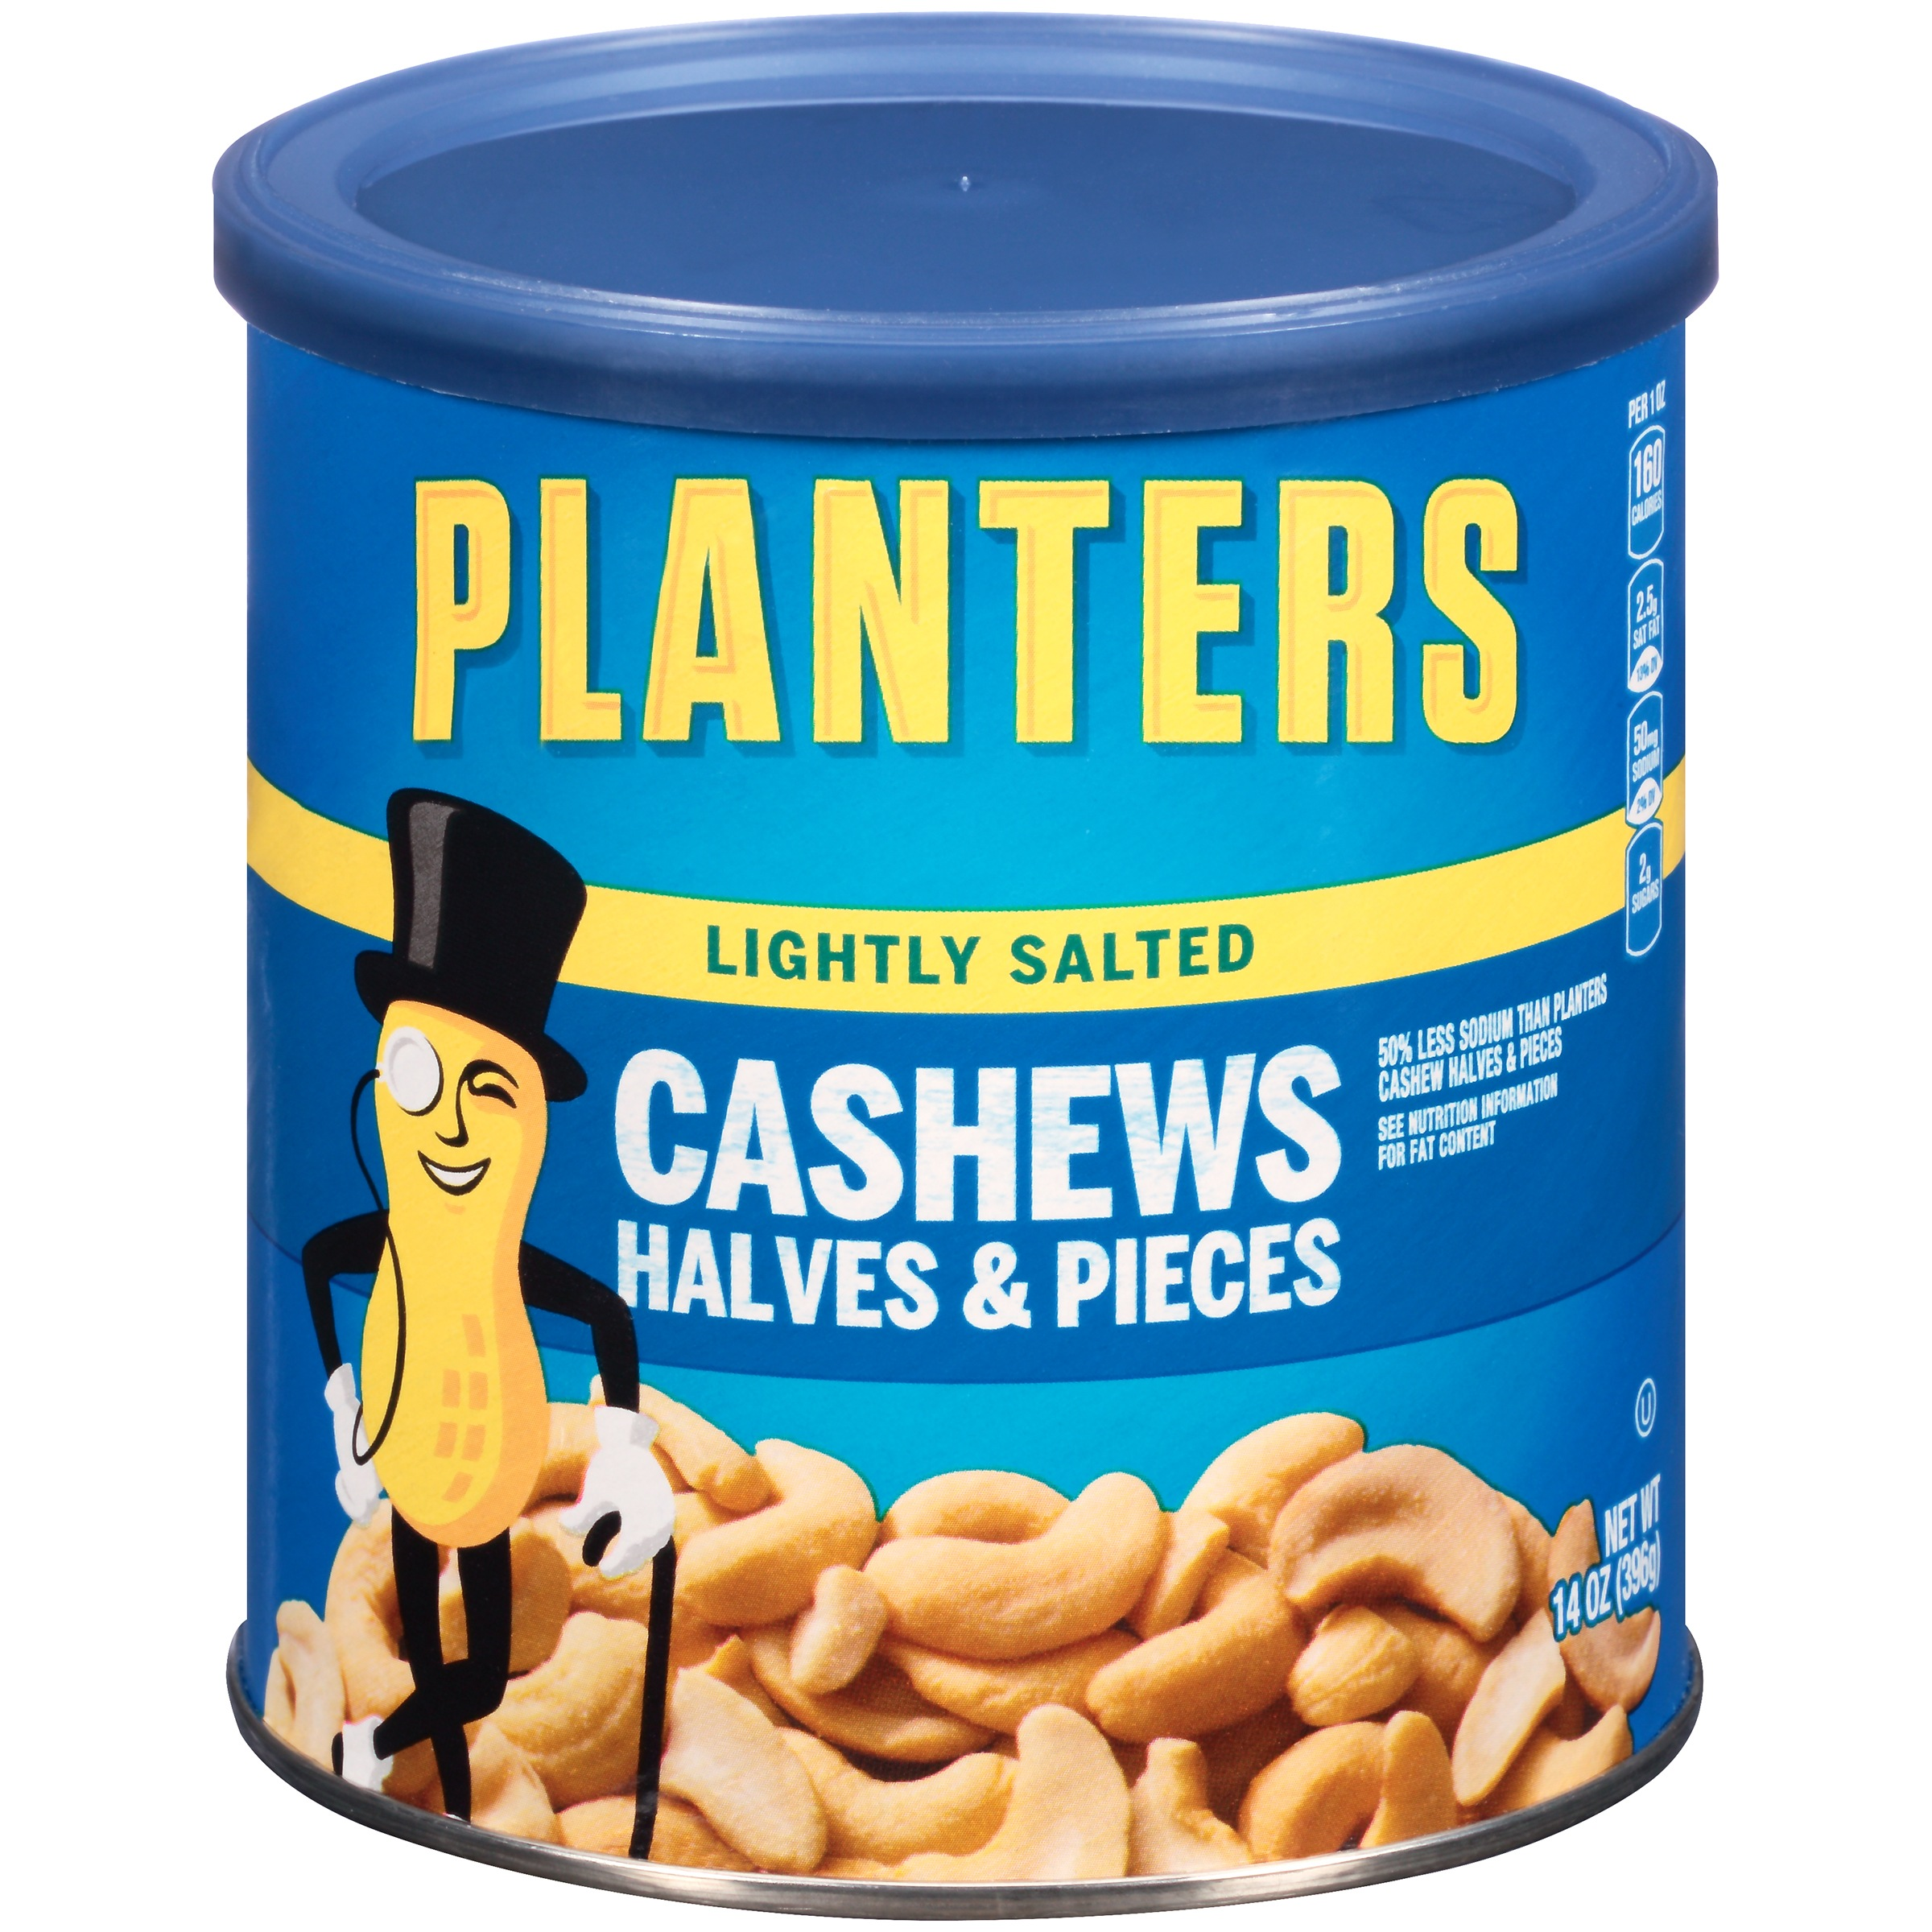 Planters Lightly Salted Cashew Halves & Pieces 14 oz. Canister